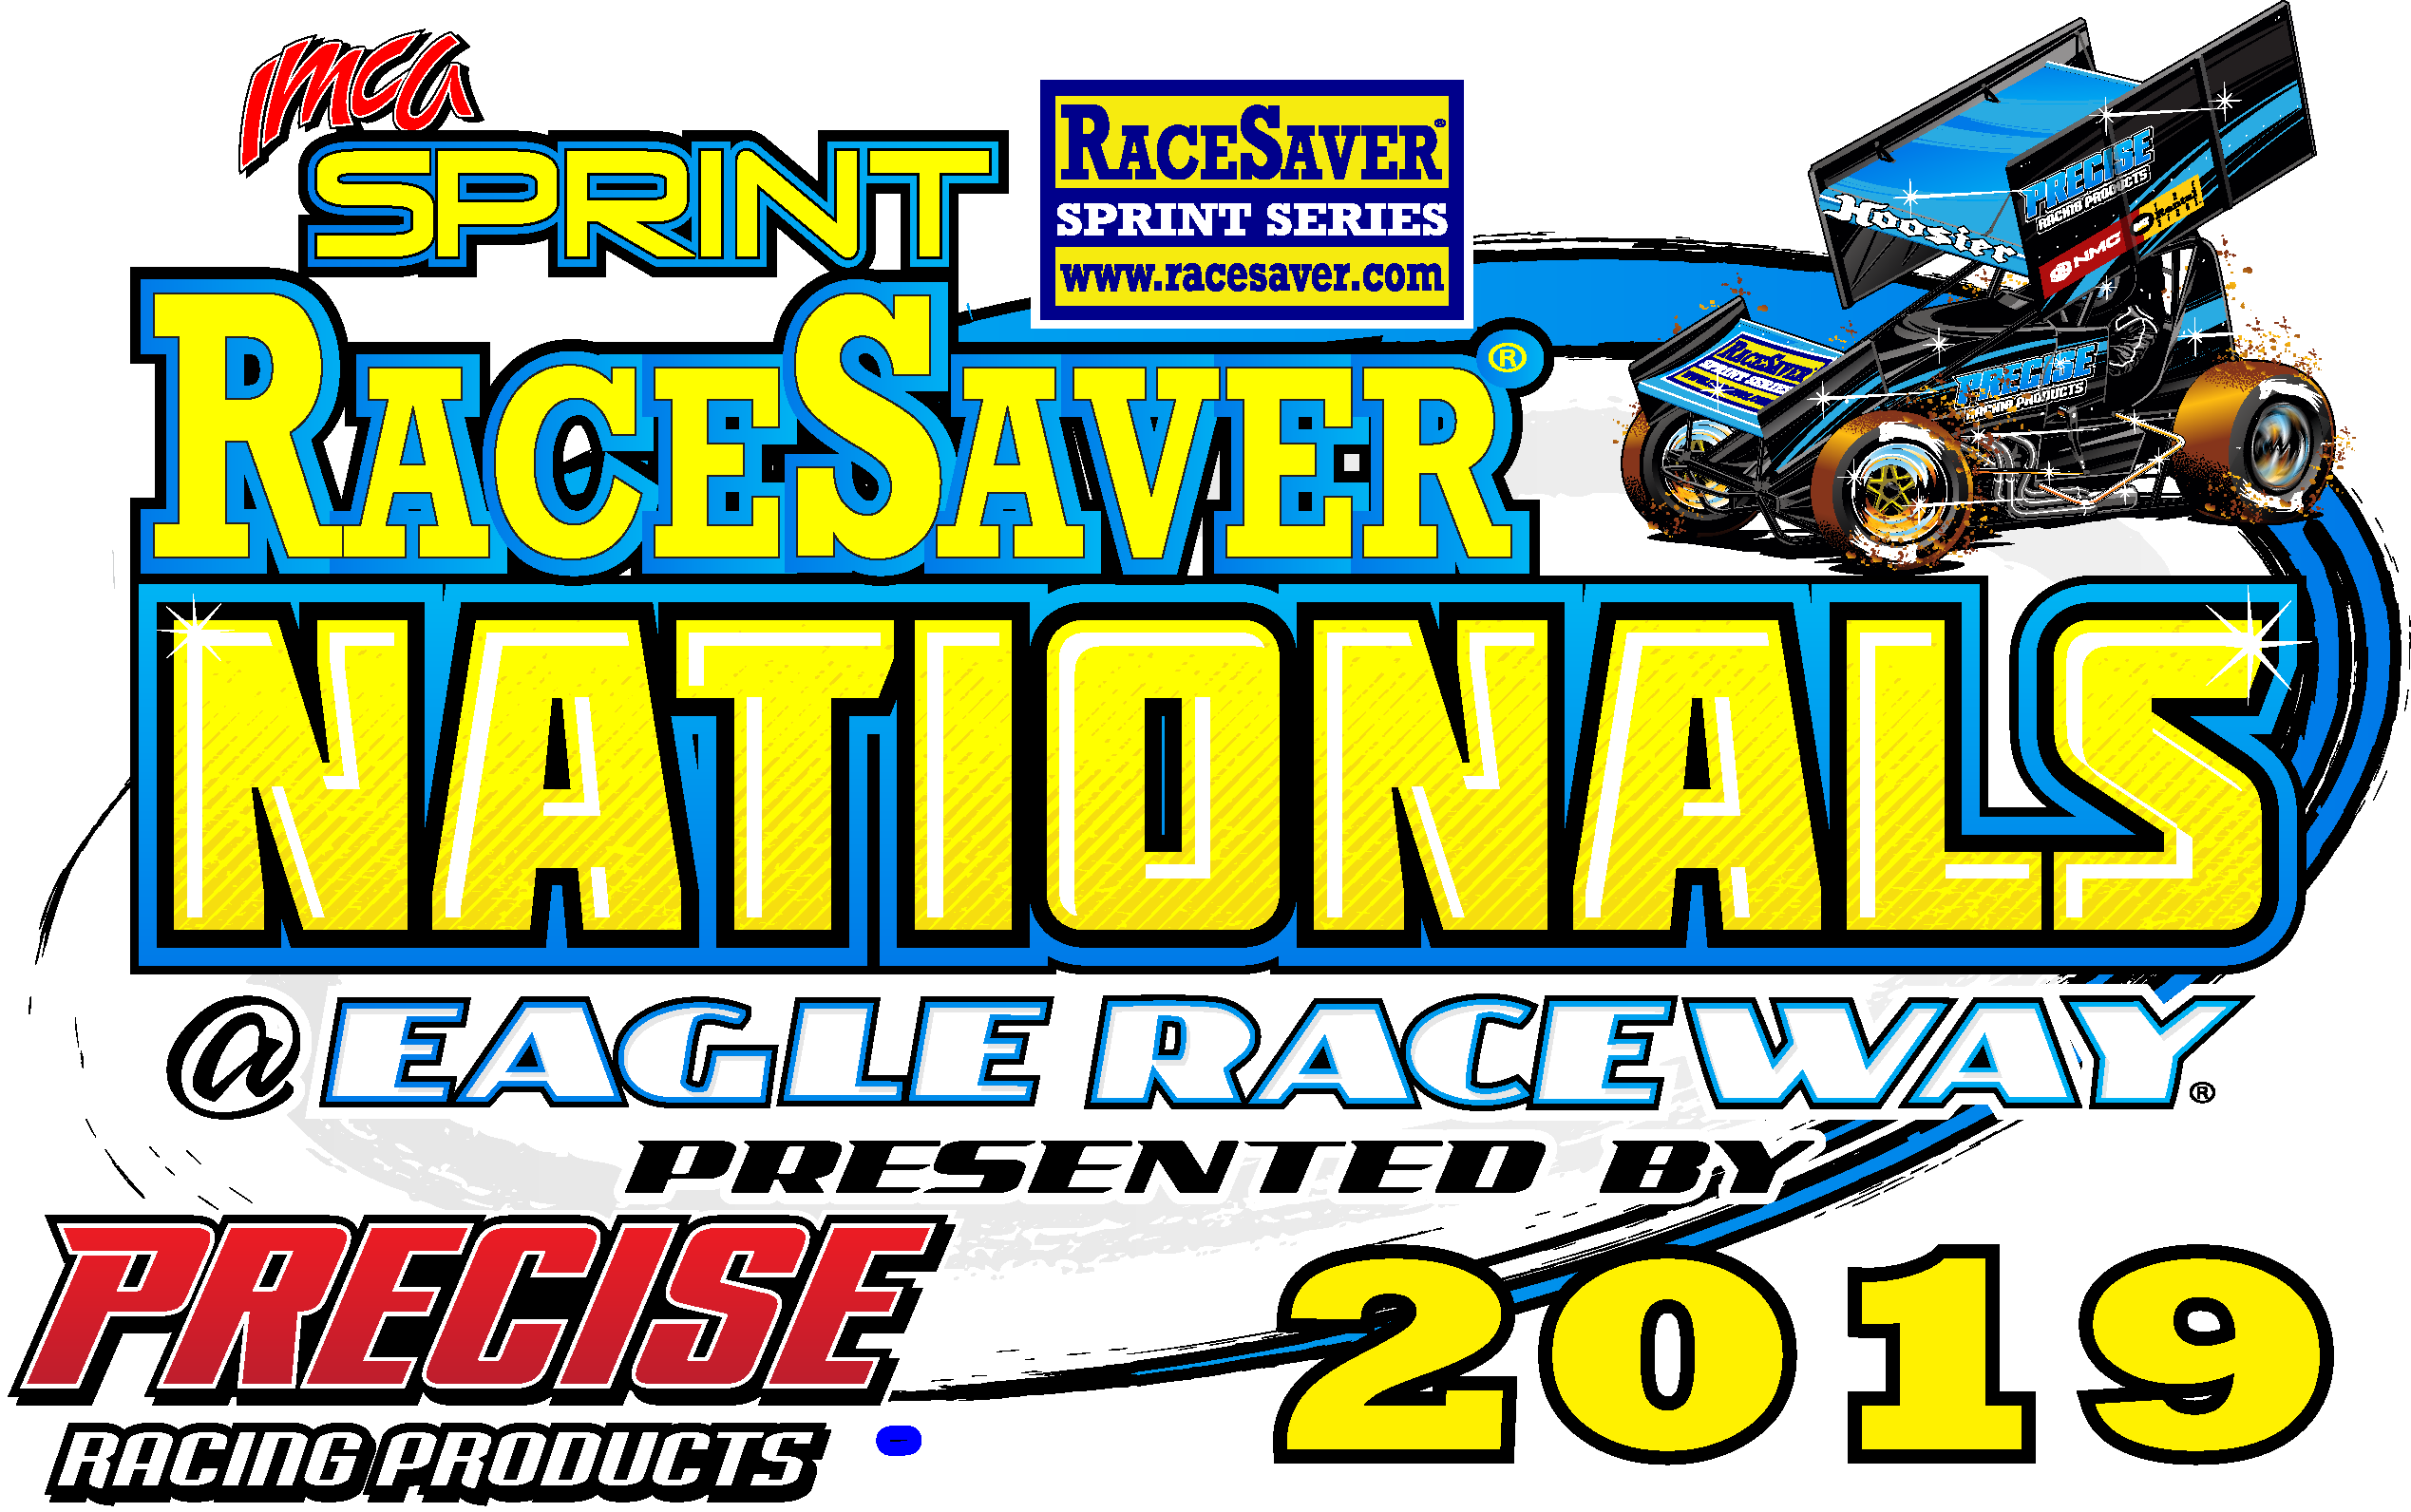 Eagle Raceway amps up for RaceSaver Nationals